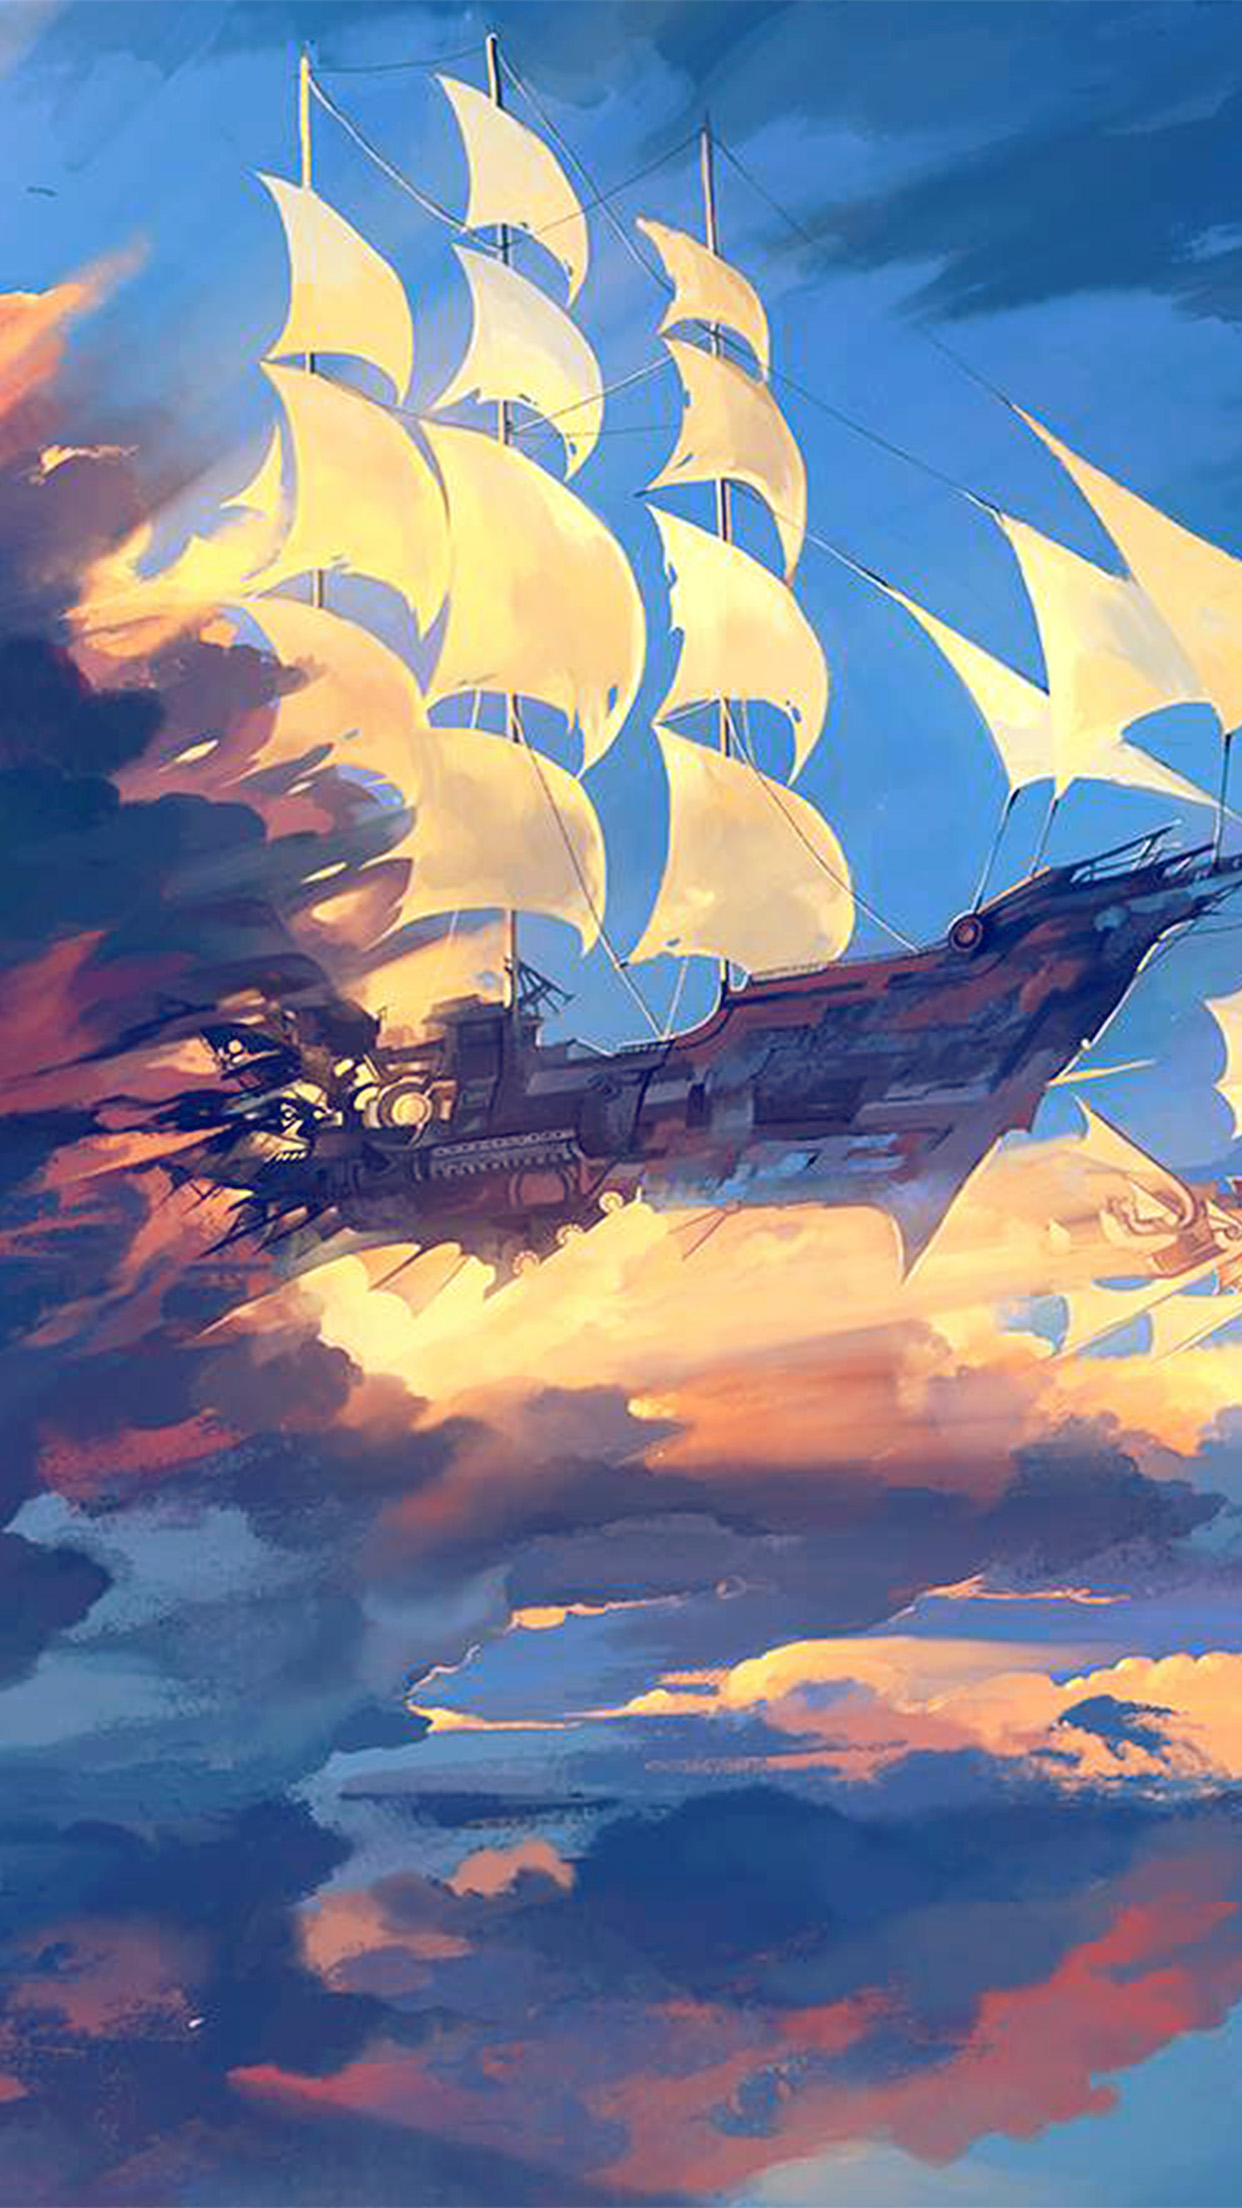 Papers Co Iphone Wallpaper Az68 Fly Ship Anime Illustration Art Blue